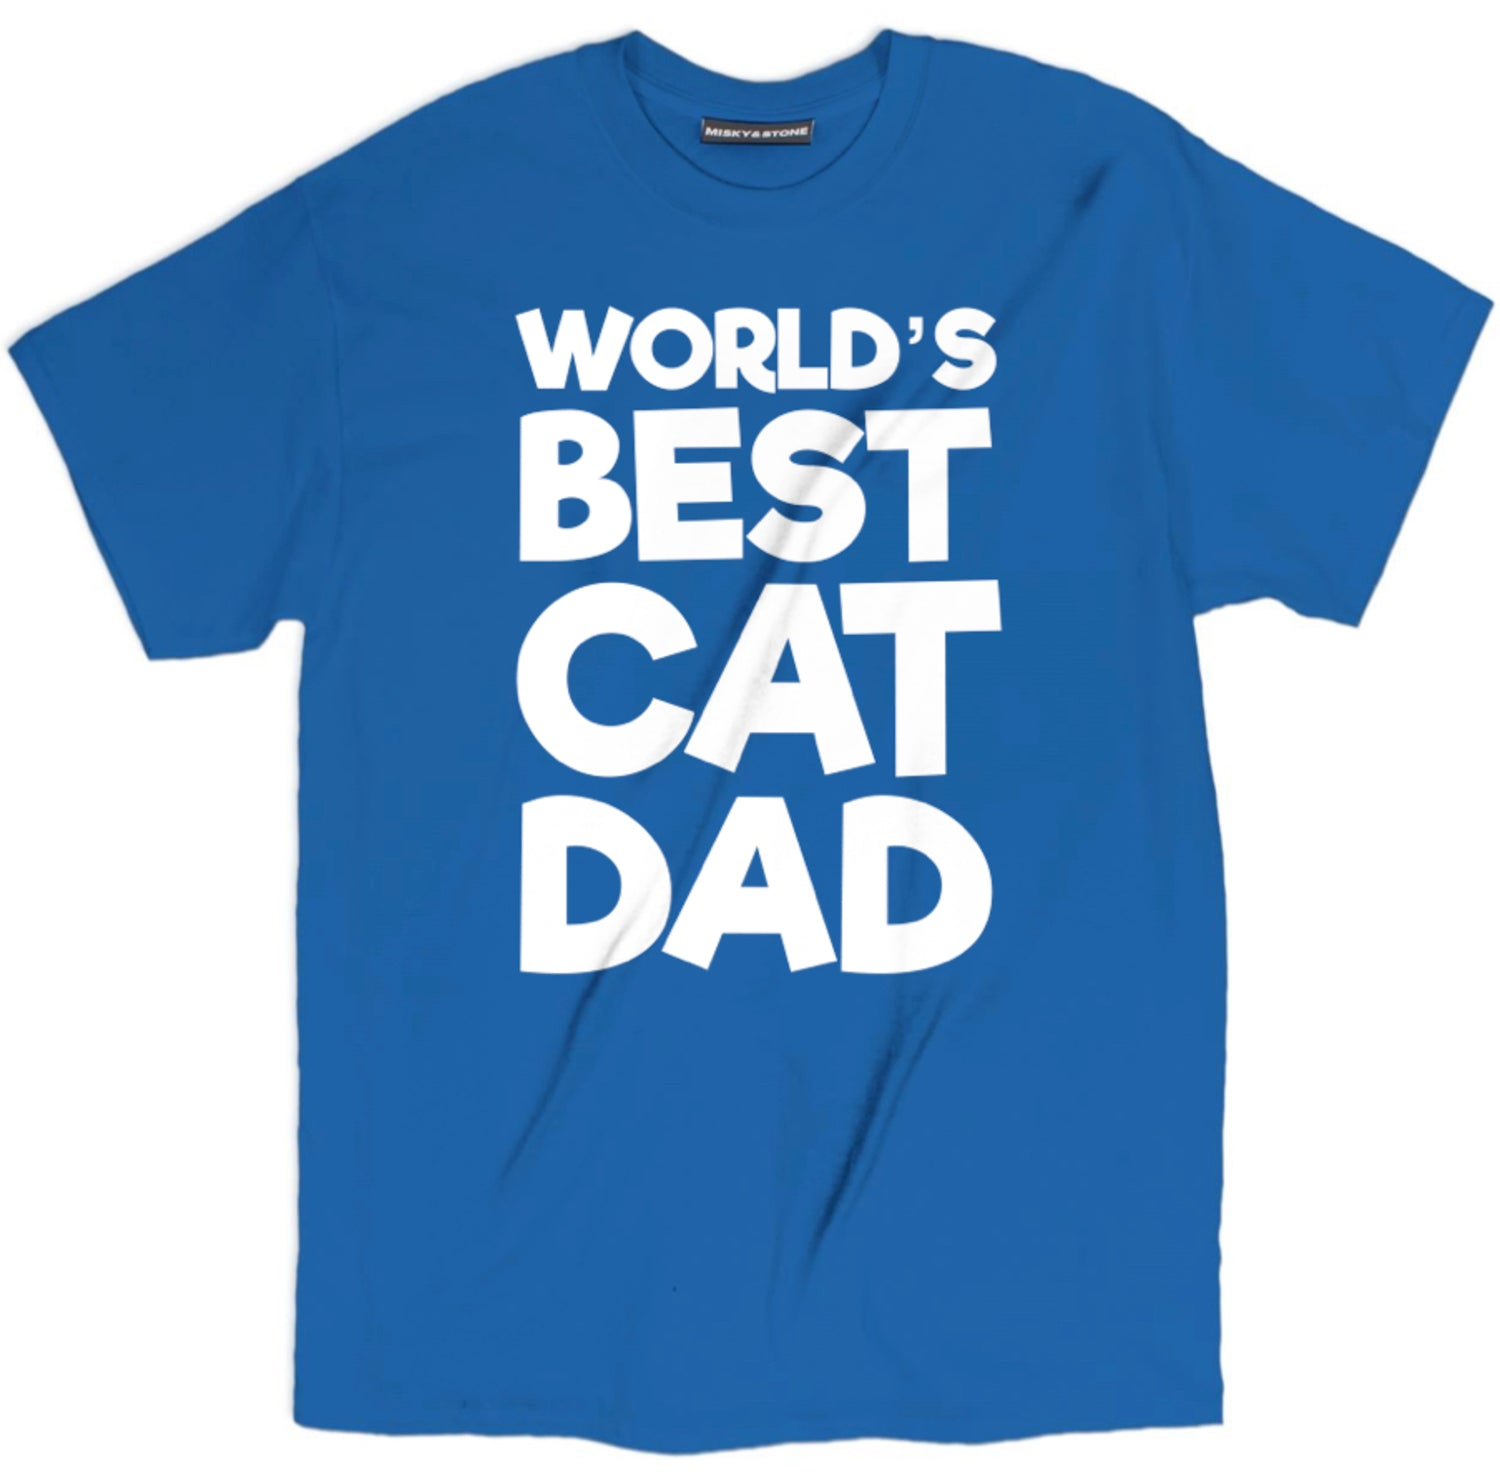 cat dad t shirt, cat dad shirt, cat shirts, funny cat shirts, funny cat t shirt, cat tee shirts, cute cat shirts, crazy cat shirts, cool cat shirts, cat tee, cat lovers t shirts, awesome cat shirts,